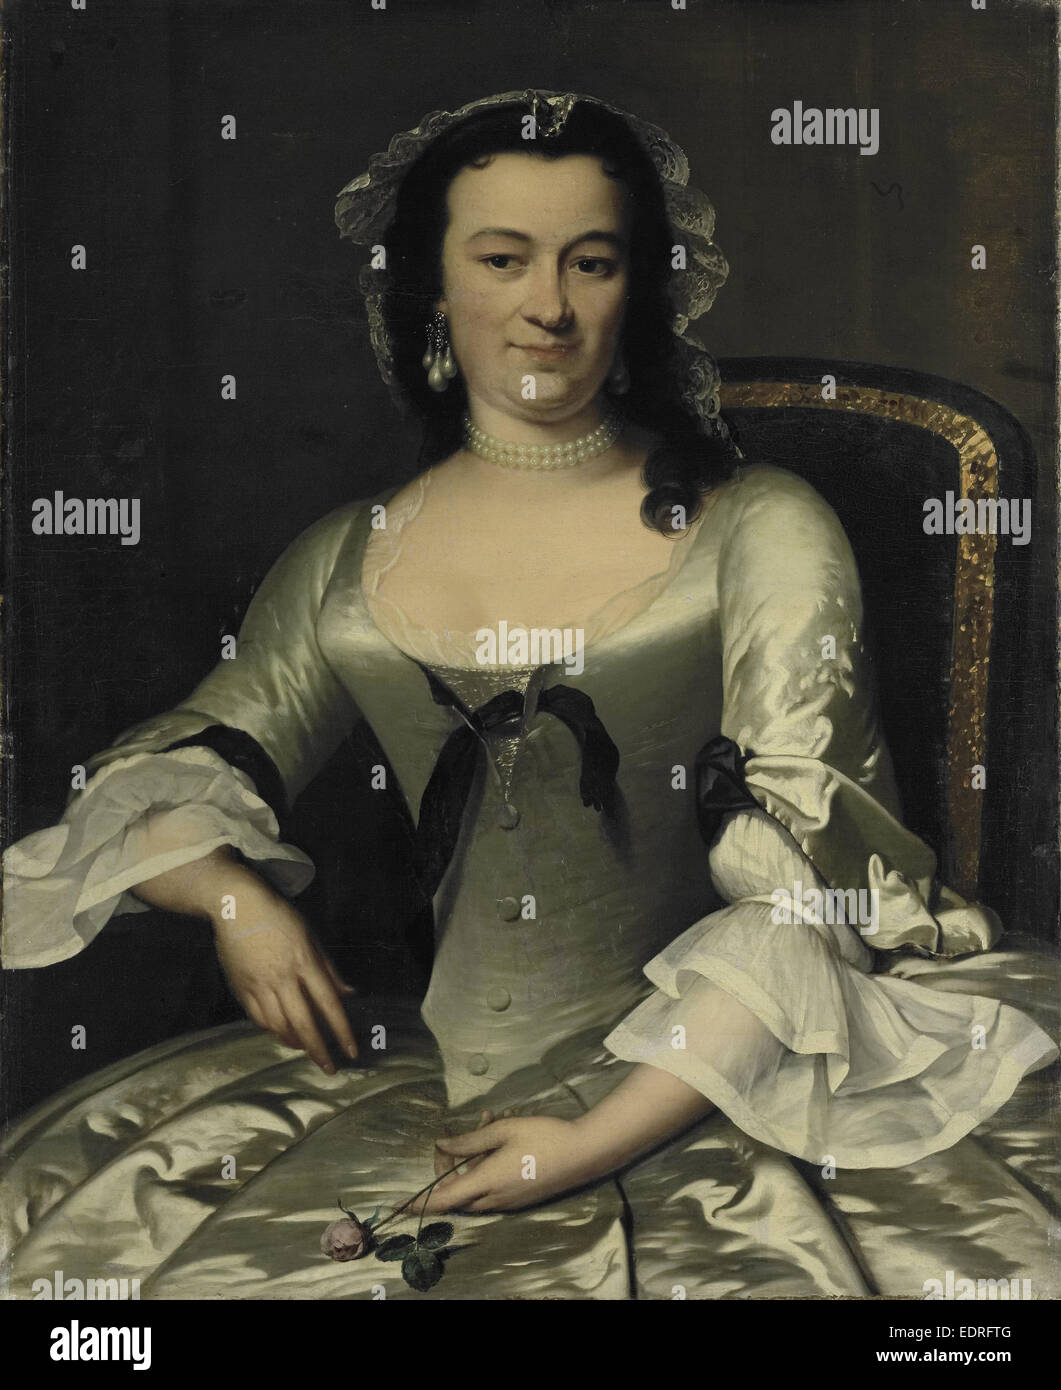 Portrait of Maria Henriëtte van de Pol, Wife of Willem Sautijn, Frans van der Mijn, 1750 - 1760 - Stock Image